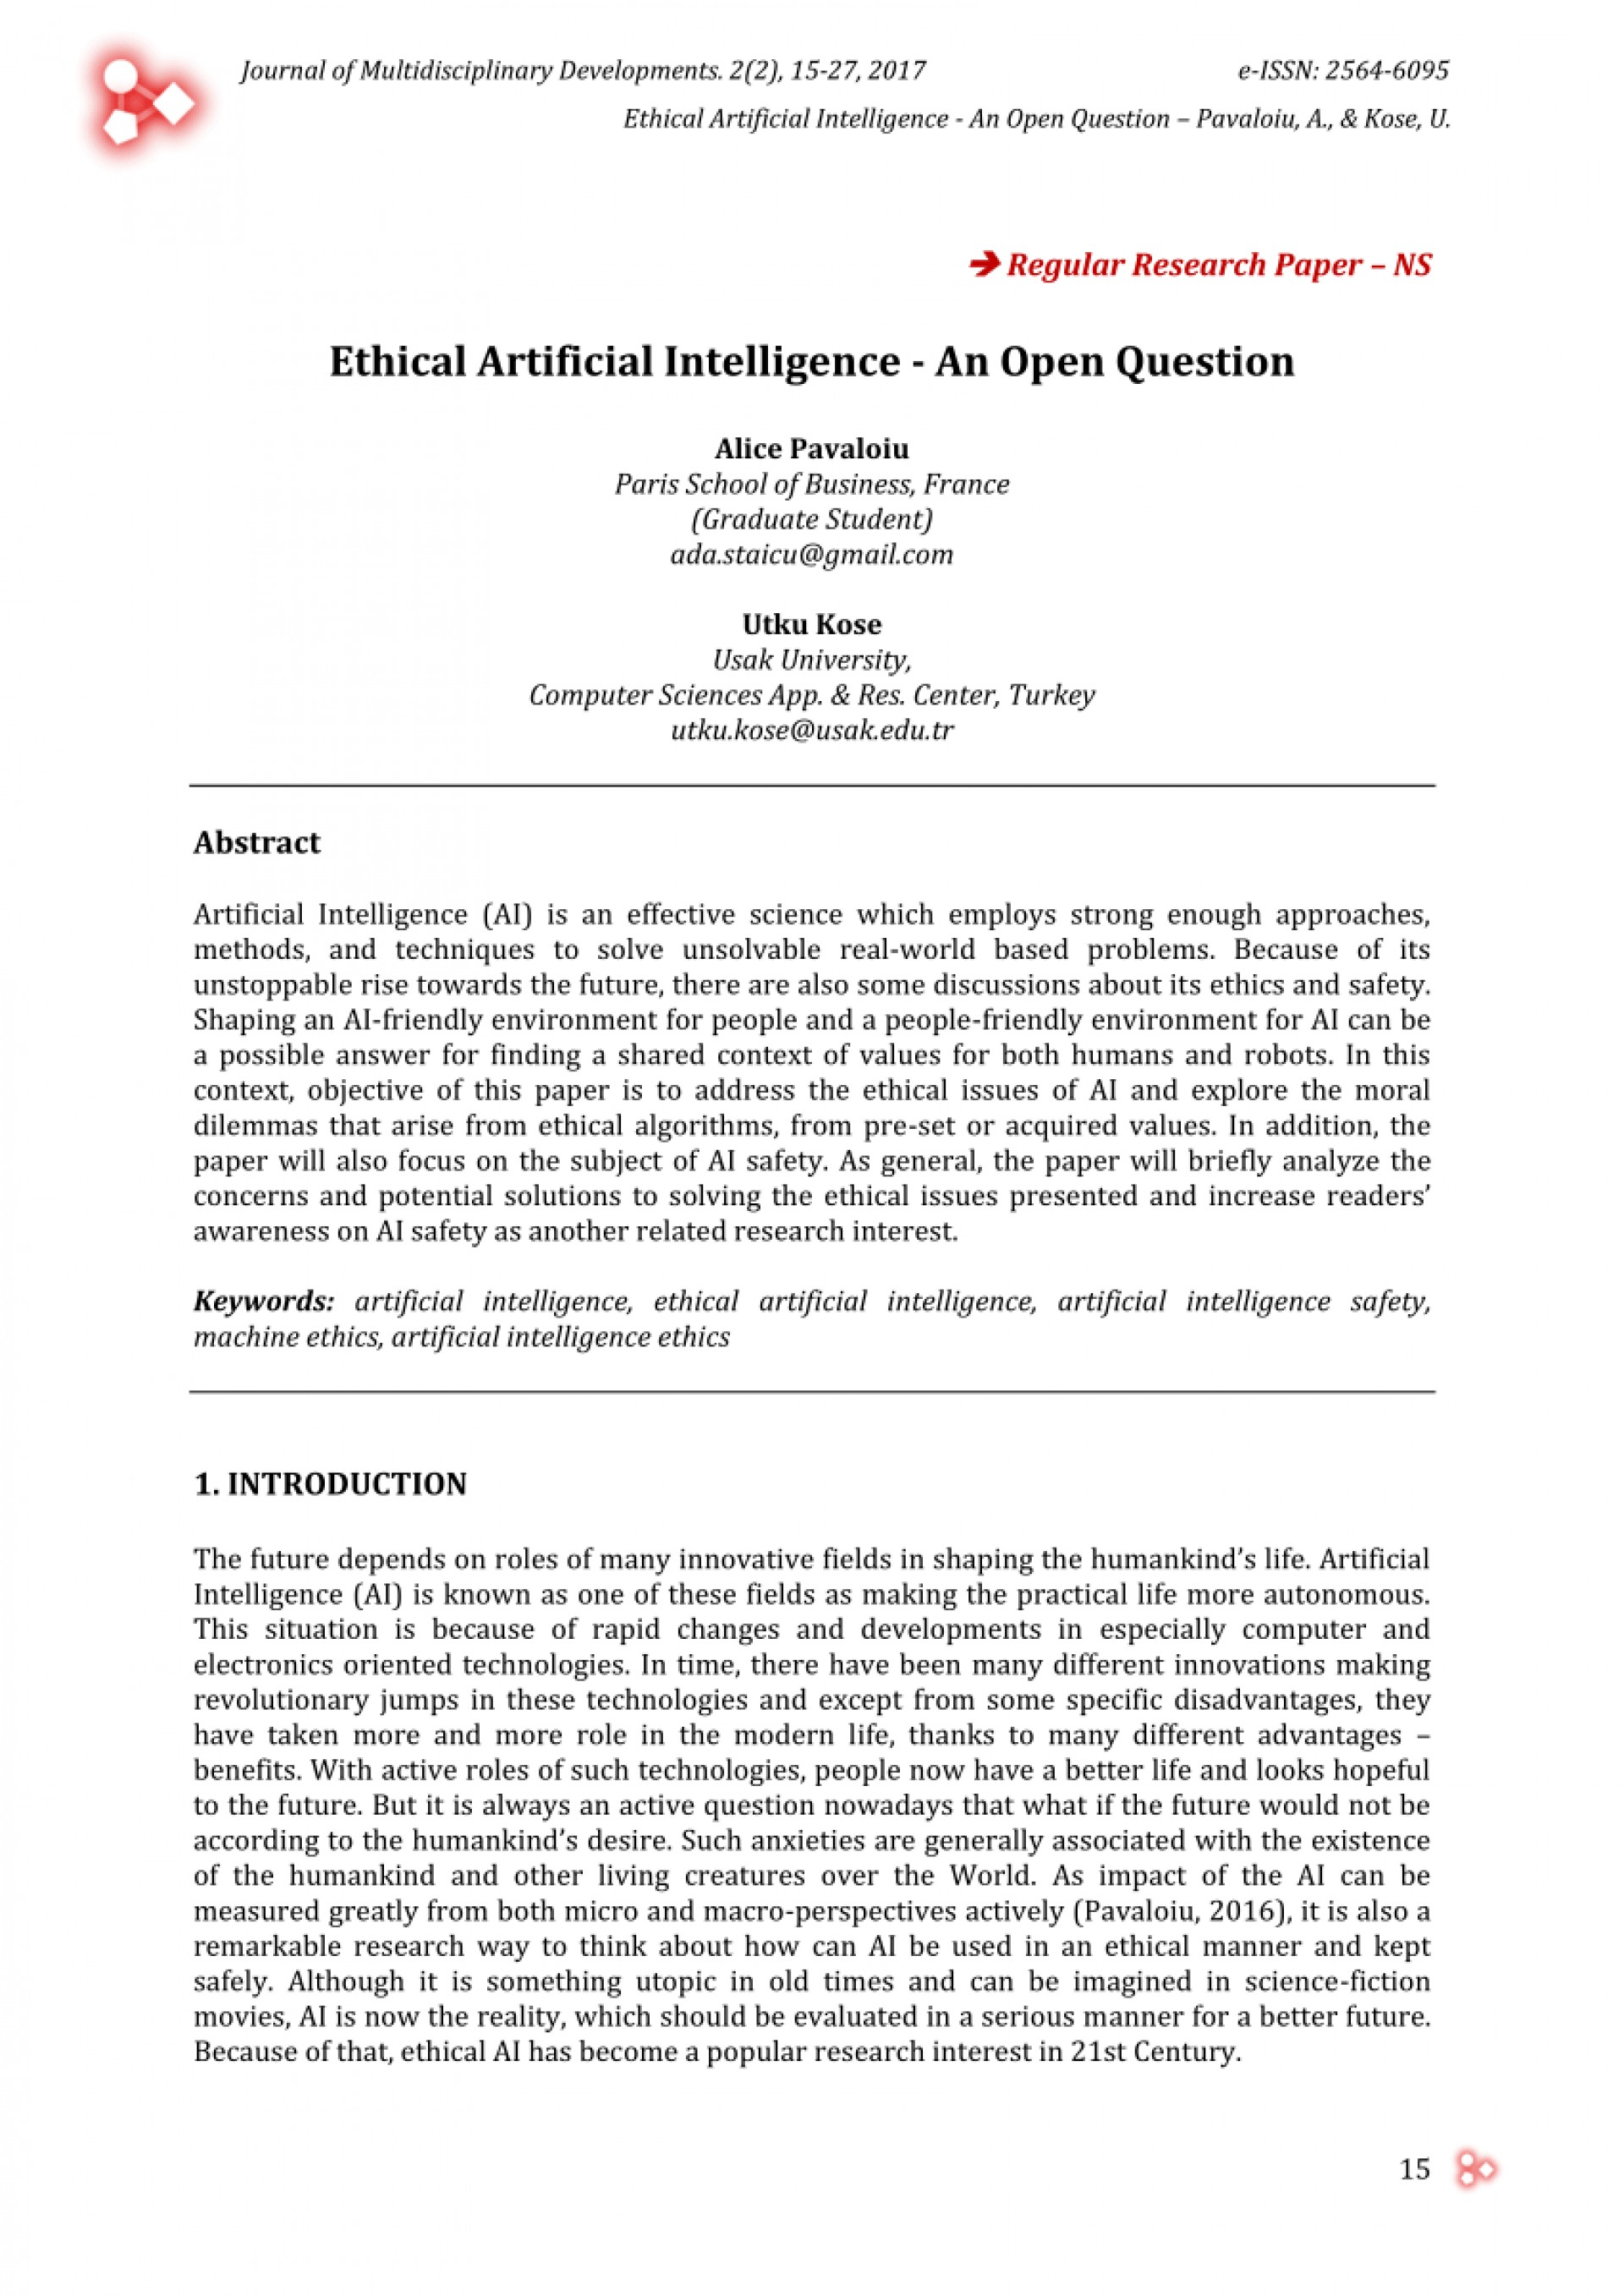 005 Largepreview Artificial Intelligence Research Paper Sensational 2017 Pdf 1920